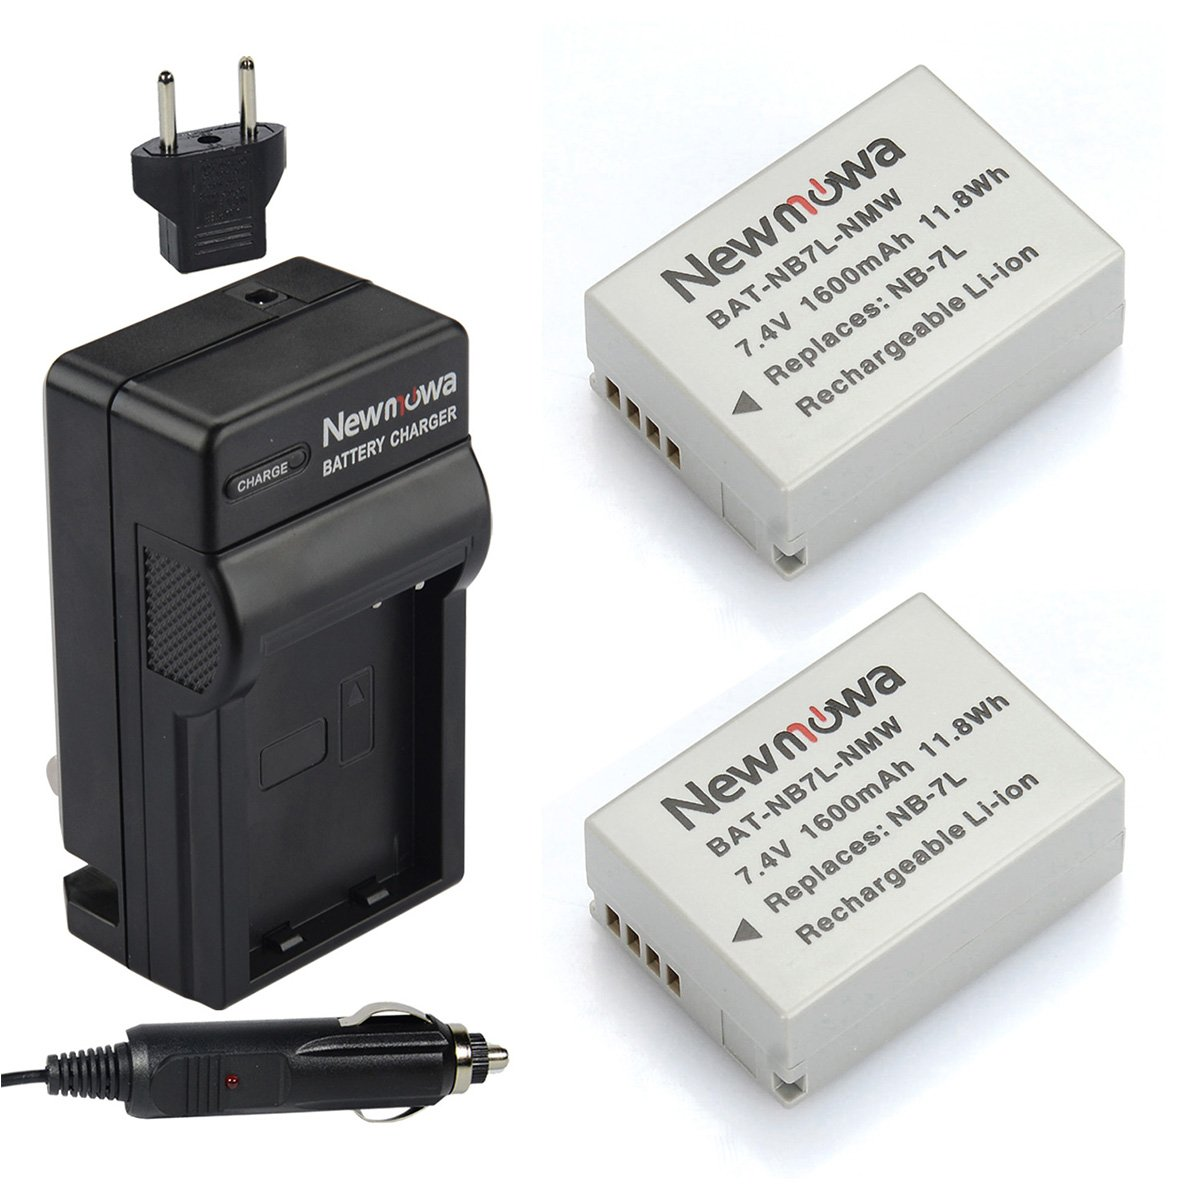 Newmowa NB-7L Battery (2-Pack) and Charger kit for Canon Powershot SX30 IS, G12, G11, G10,SX30IS,Cannon, CB-2LZ, NB7L